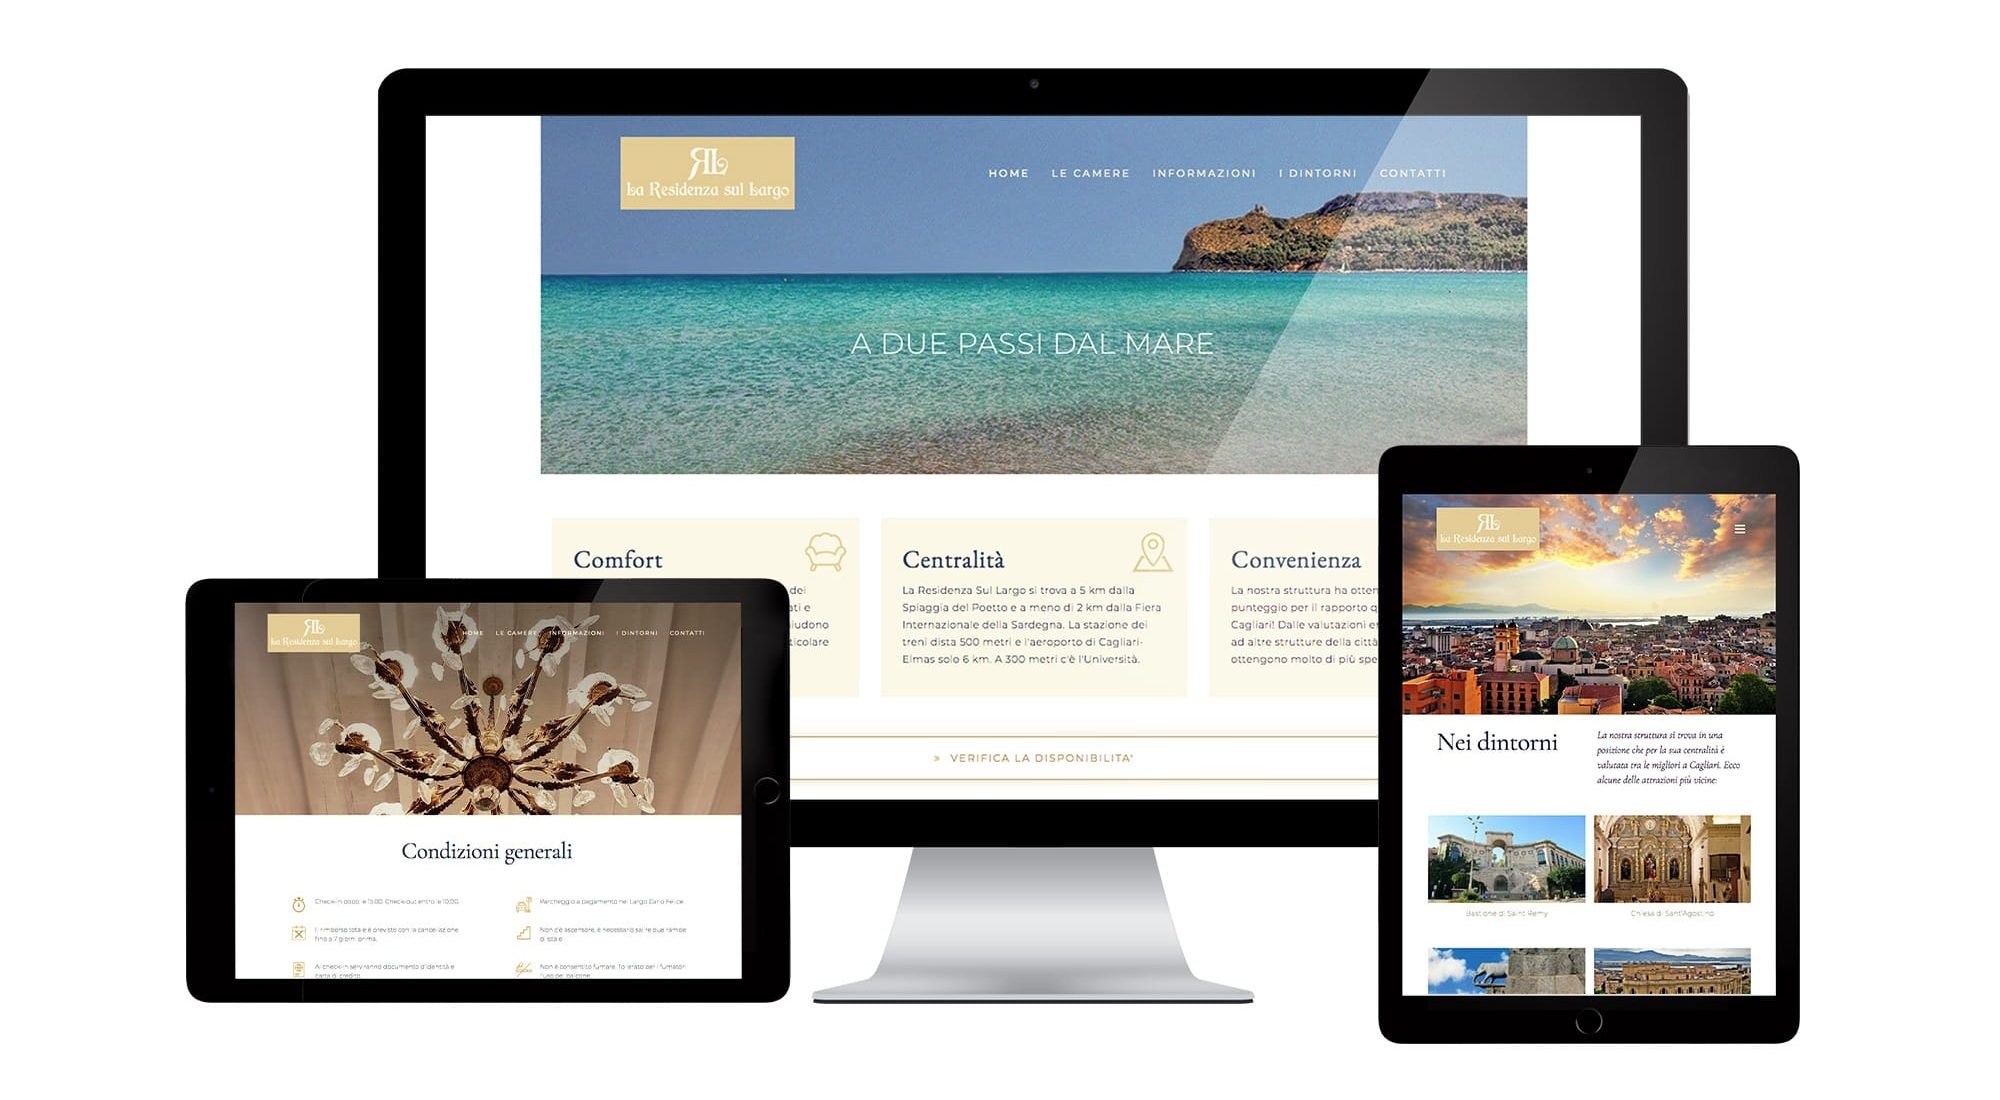 La Residenza Sul Largo website shown on desktop and mobile devices